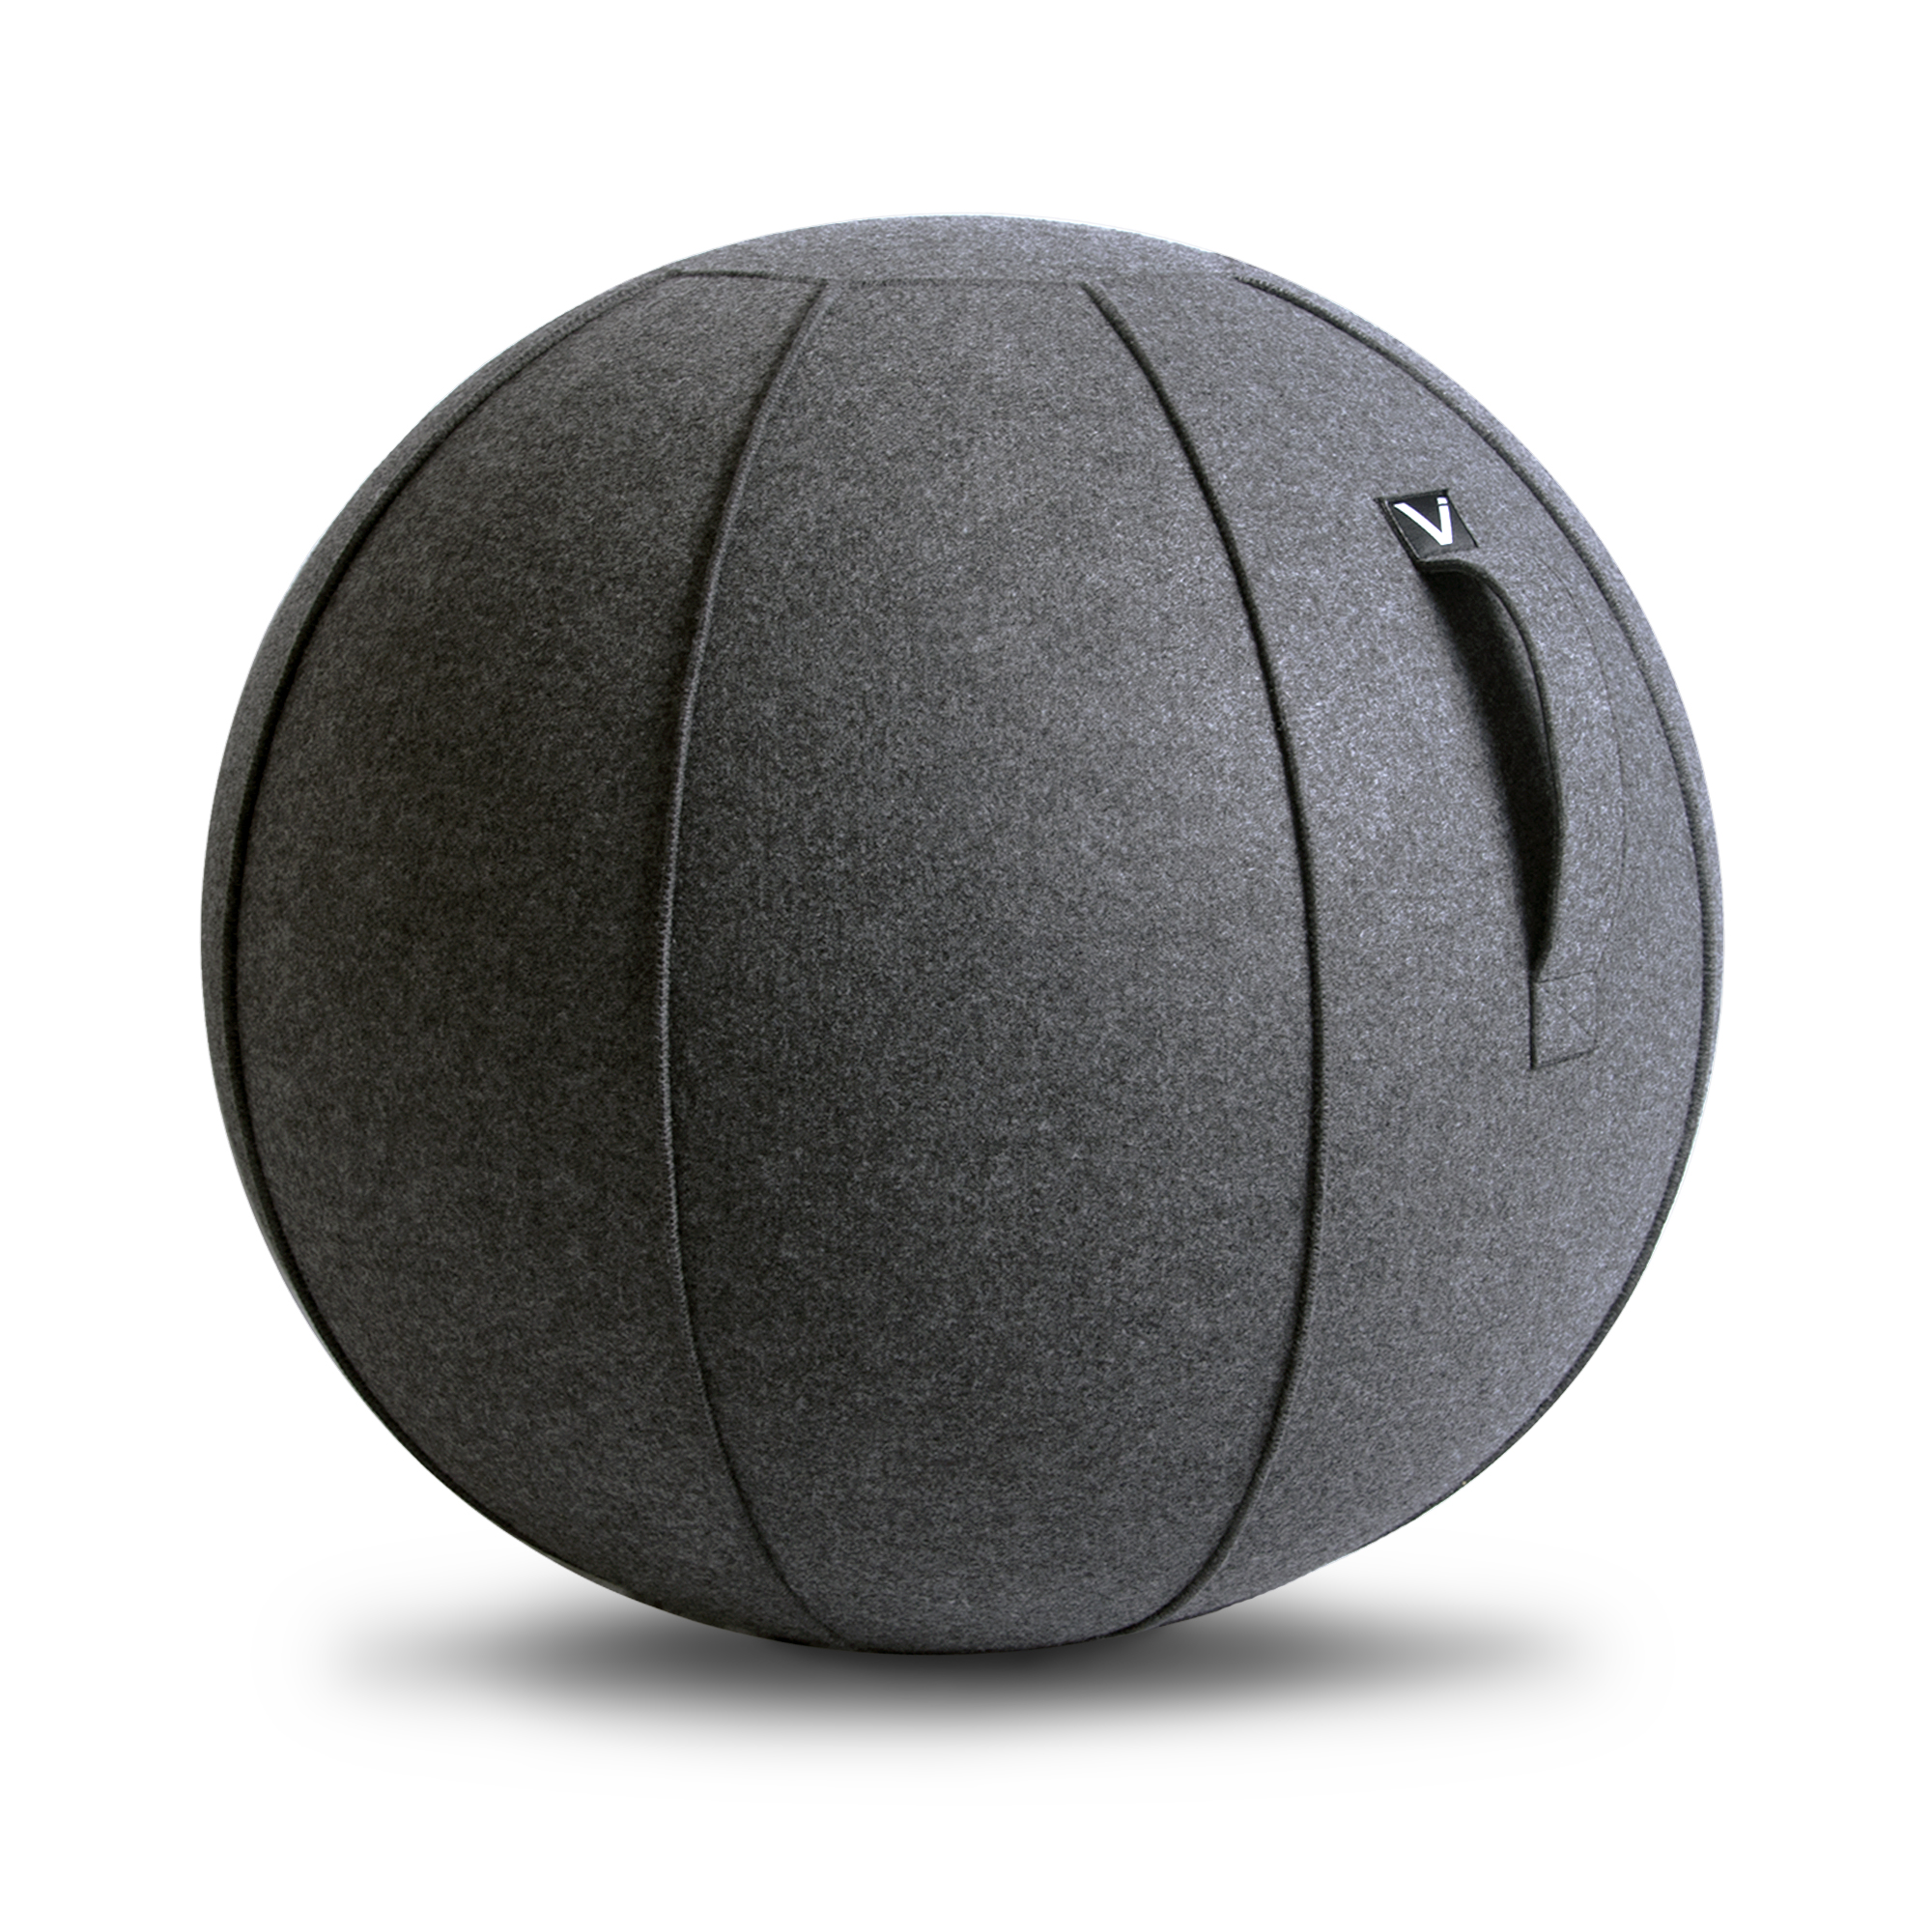 Ergo Ball Chair Luxury Sitting Ball Chairs For Adults And Children Vivora